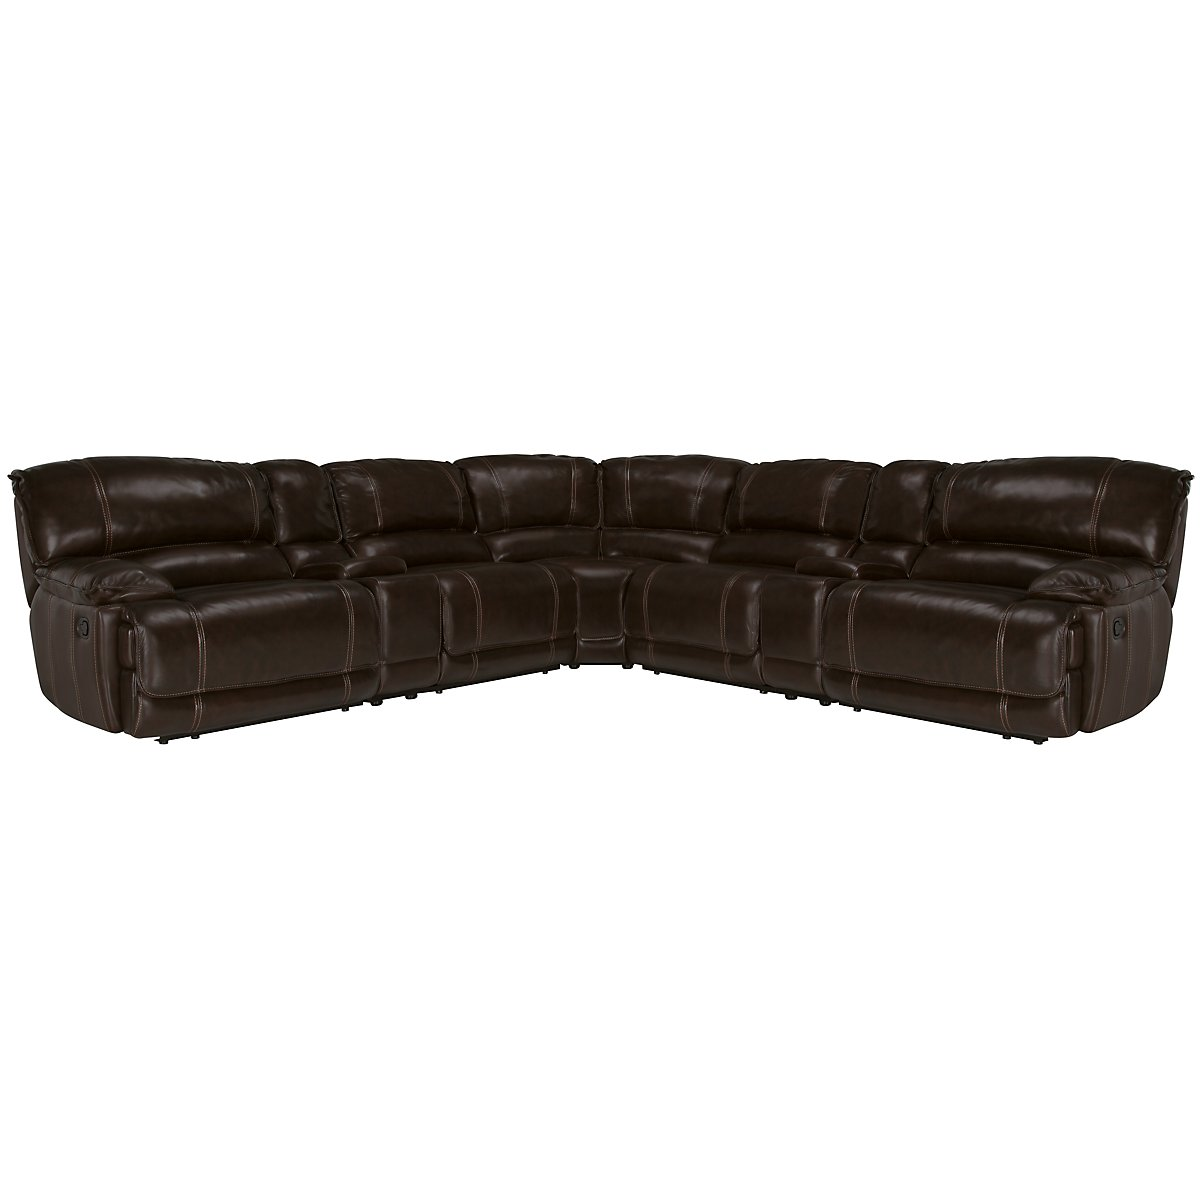 Benson Dark Brown Leather & Vinyl Large Two-Arm Manually Reclining Sectional